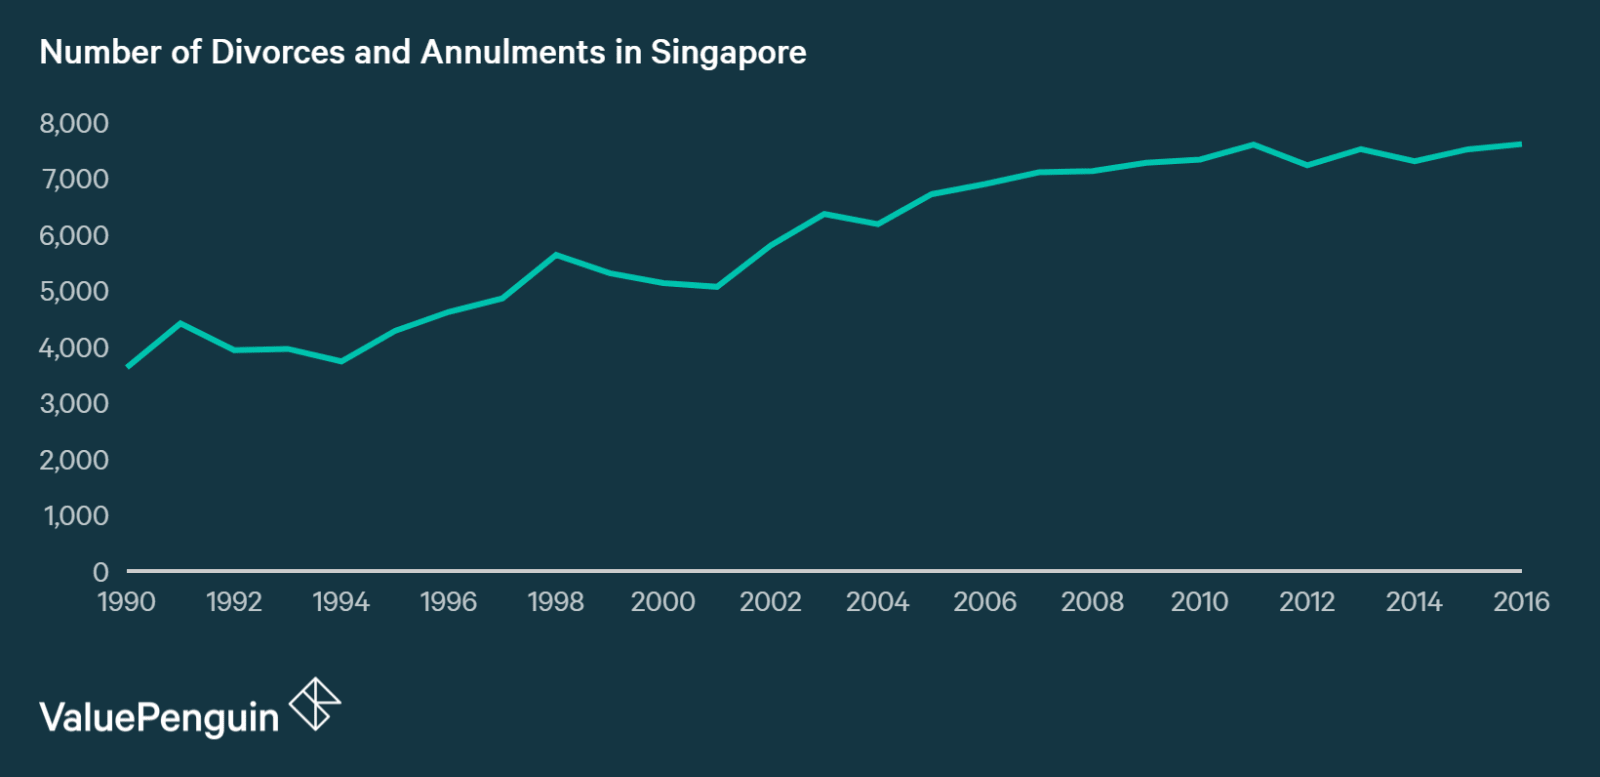 Number of divorces occurring annually in Singapore